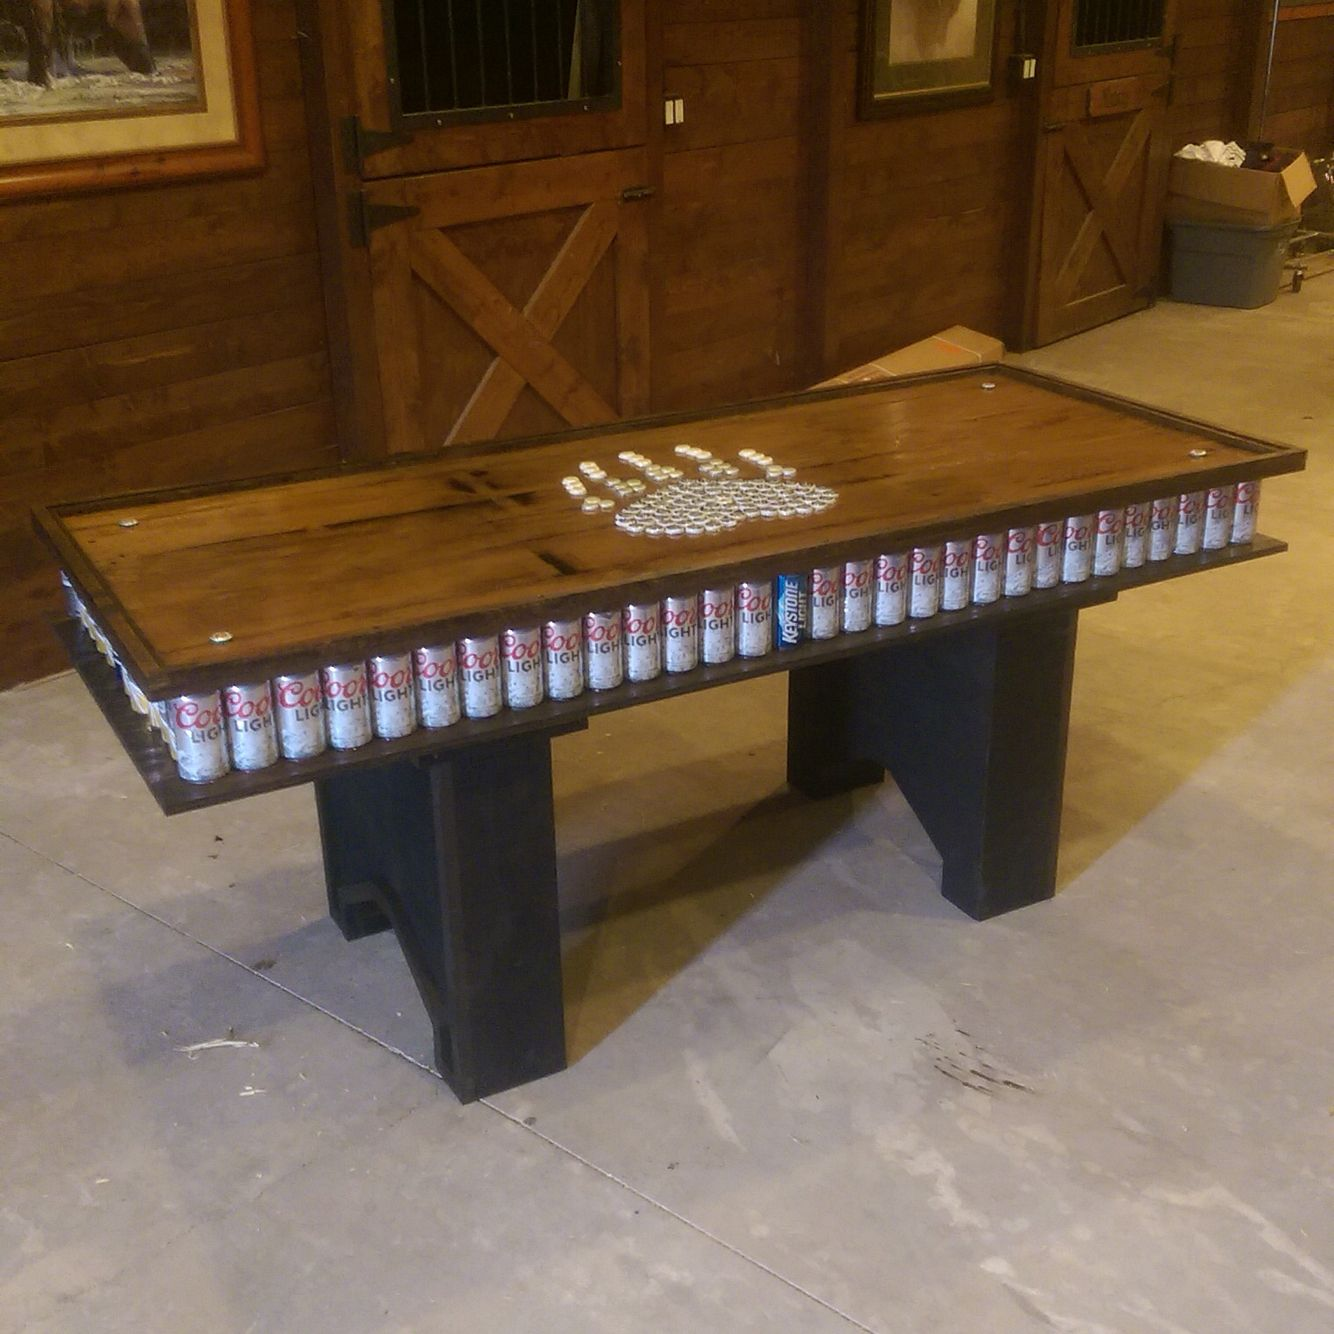 Beer pong table dimensions - College Diy Wood Beer Pong Table